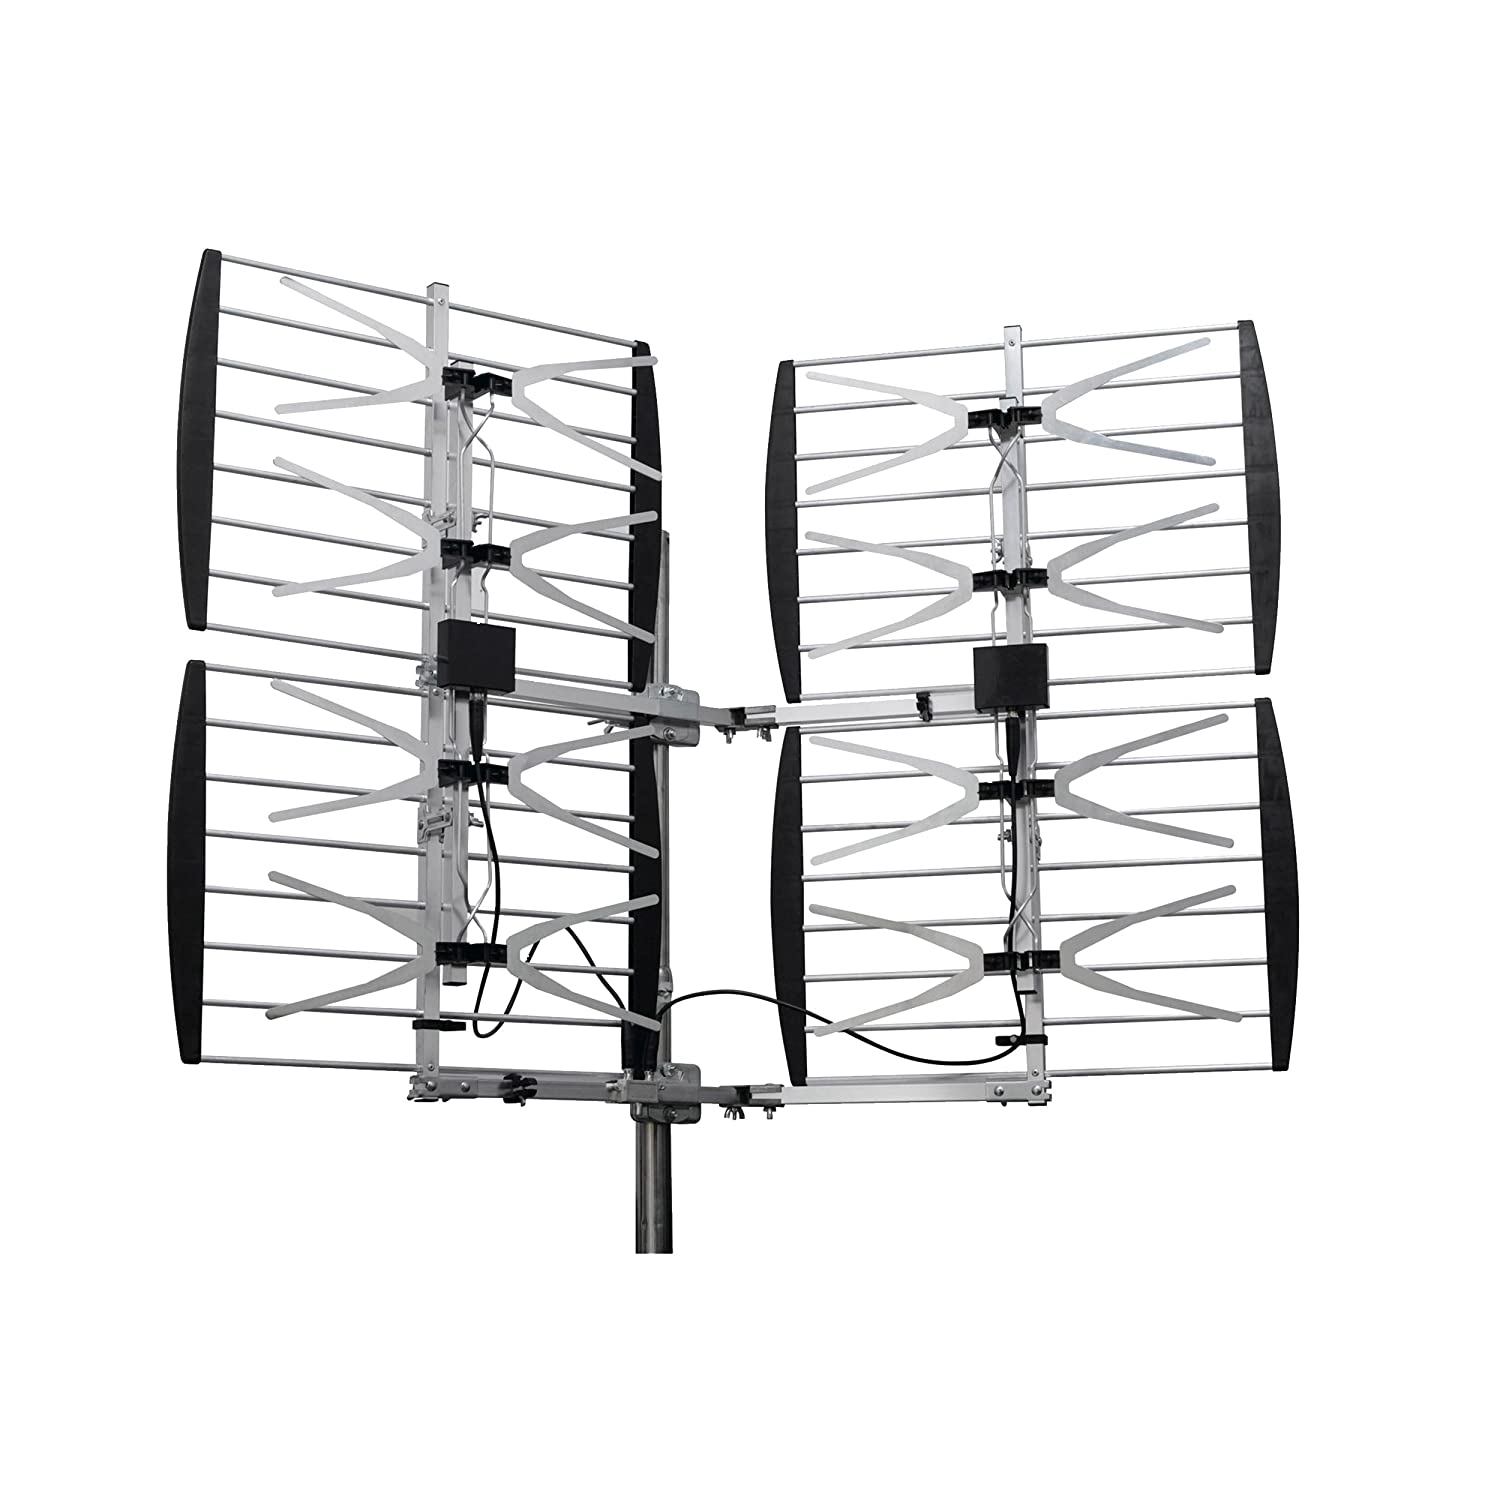 Digiwave ANT7289 Antenna with 360-Degree Adjustable Directional Antenna, Silver HomeVision Technology Inc.